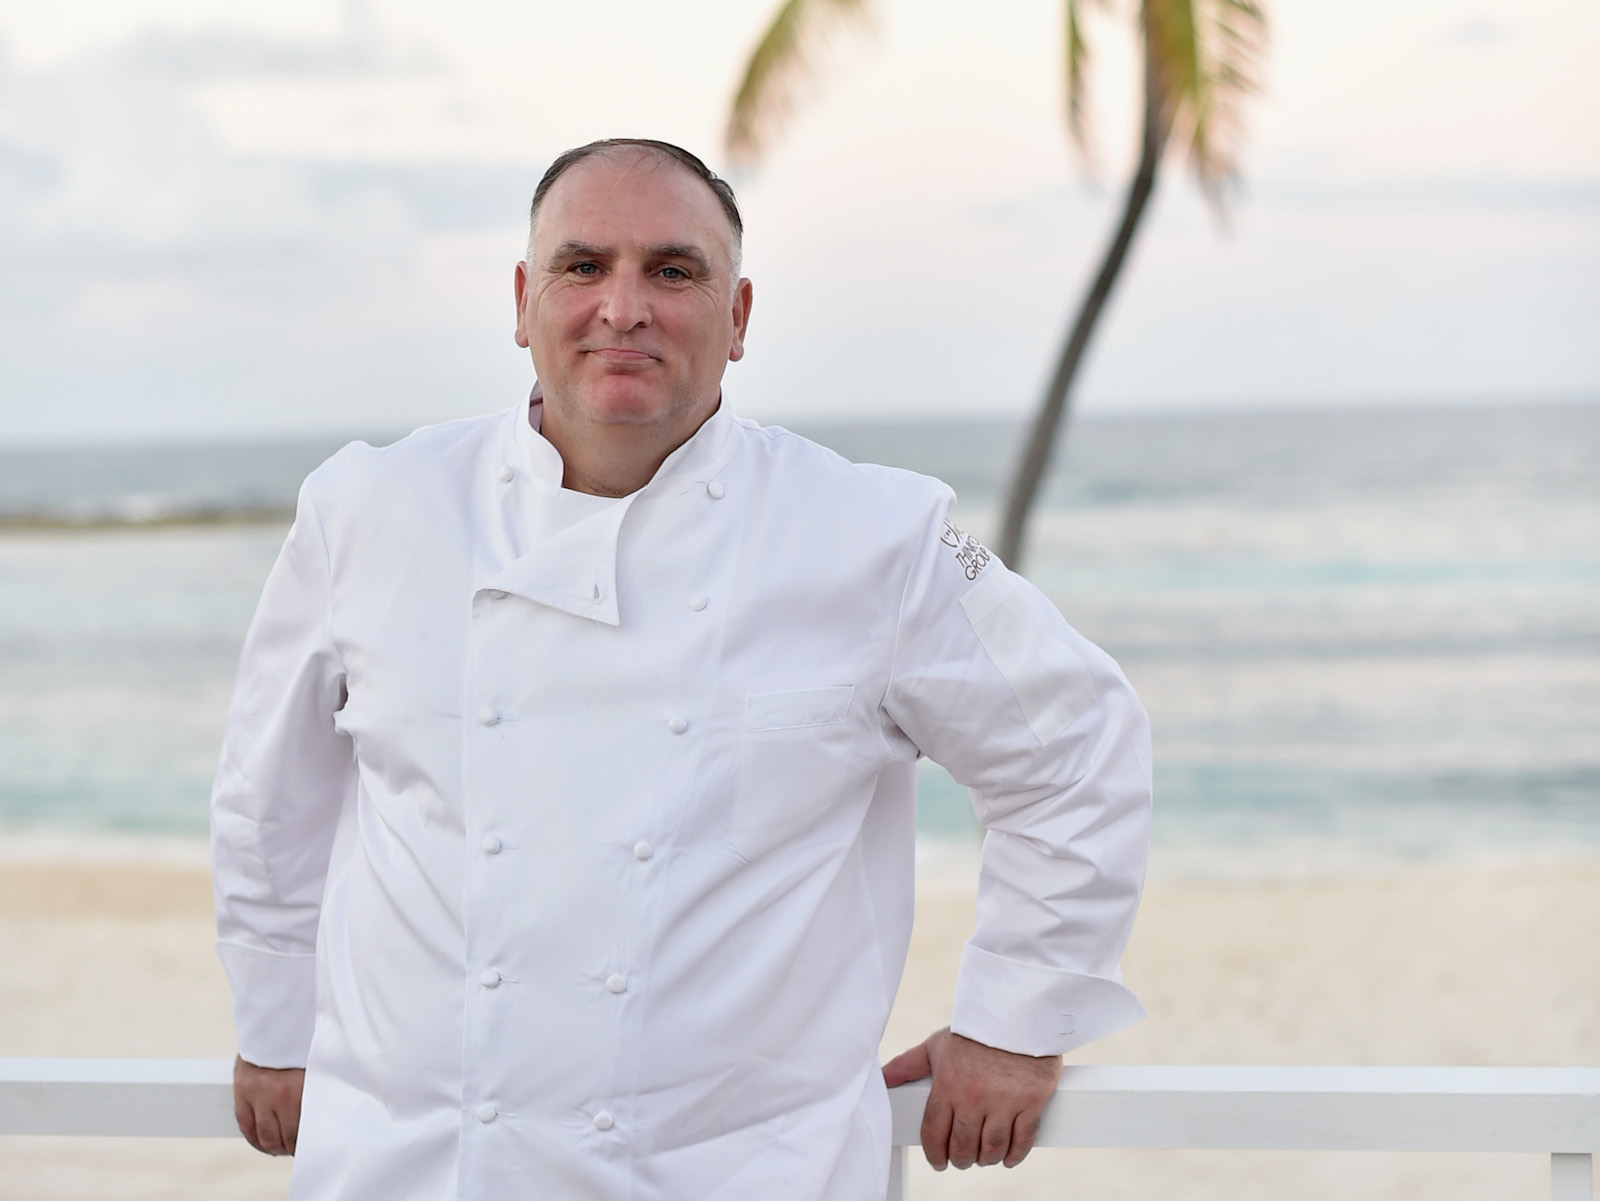 José Andrés Is Nominated for a Nobel Peace Prize